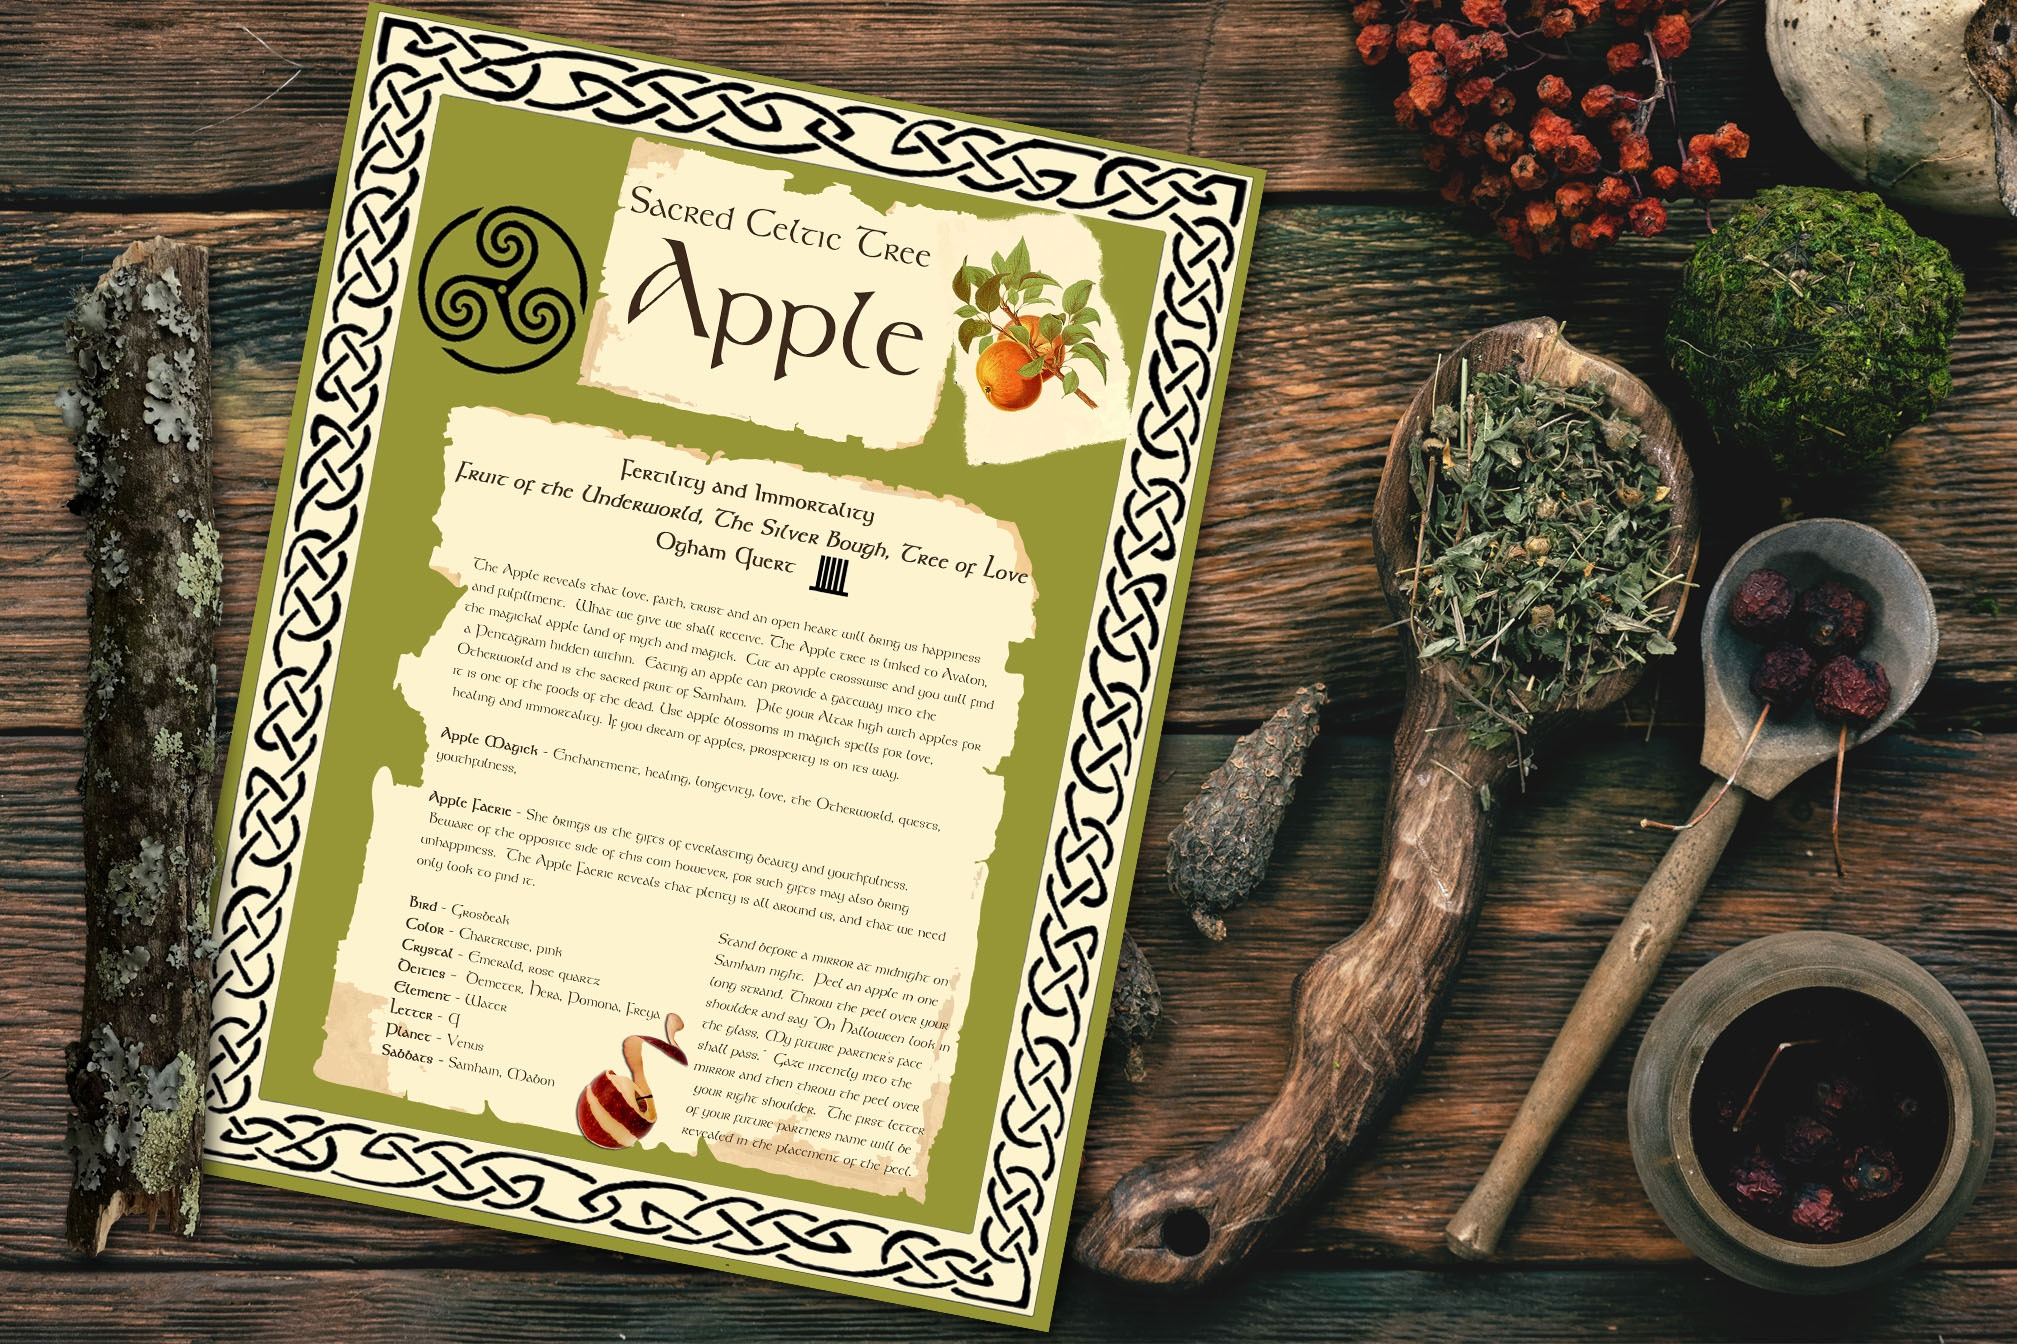 APPLE CELTIC TREE